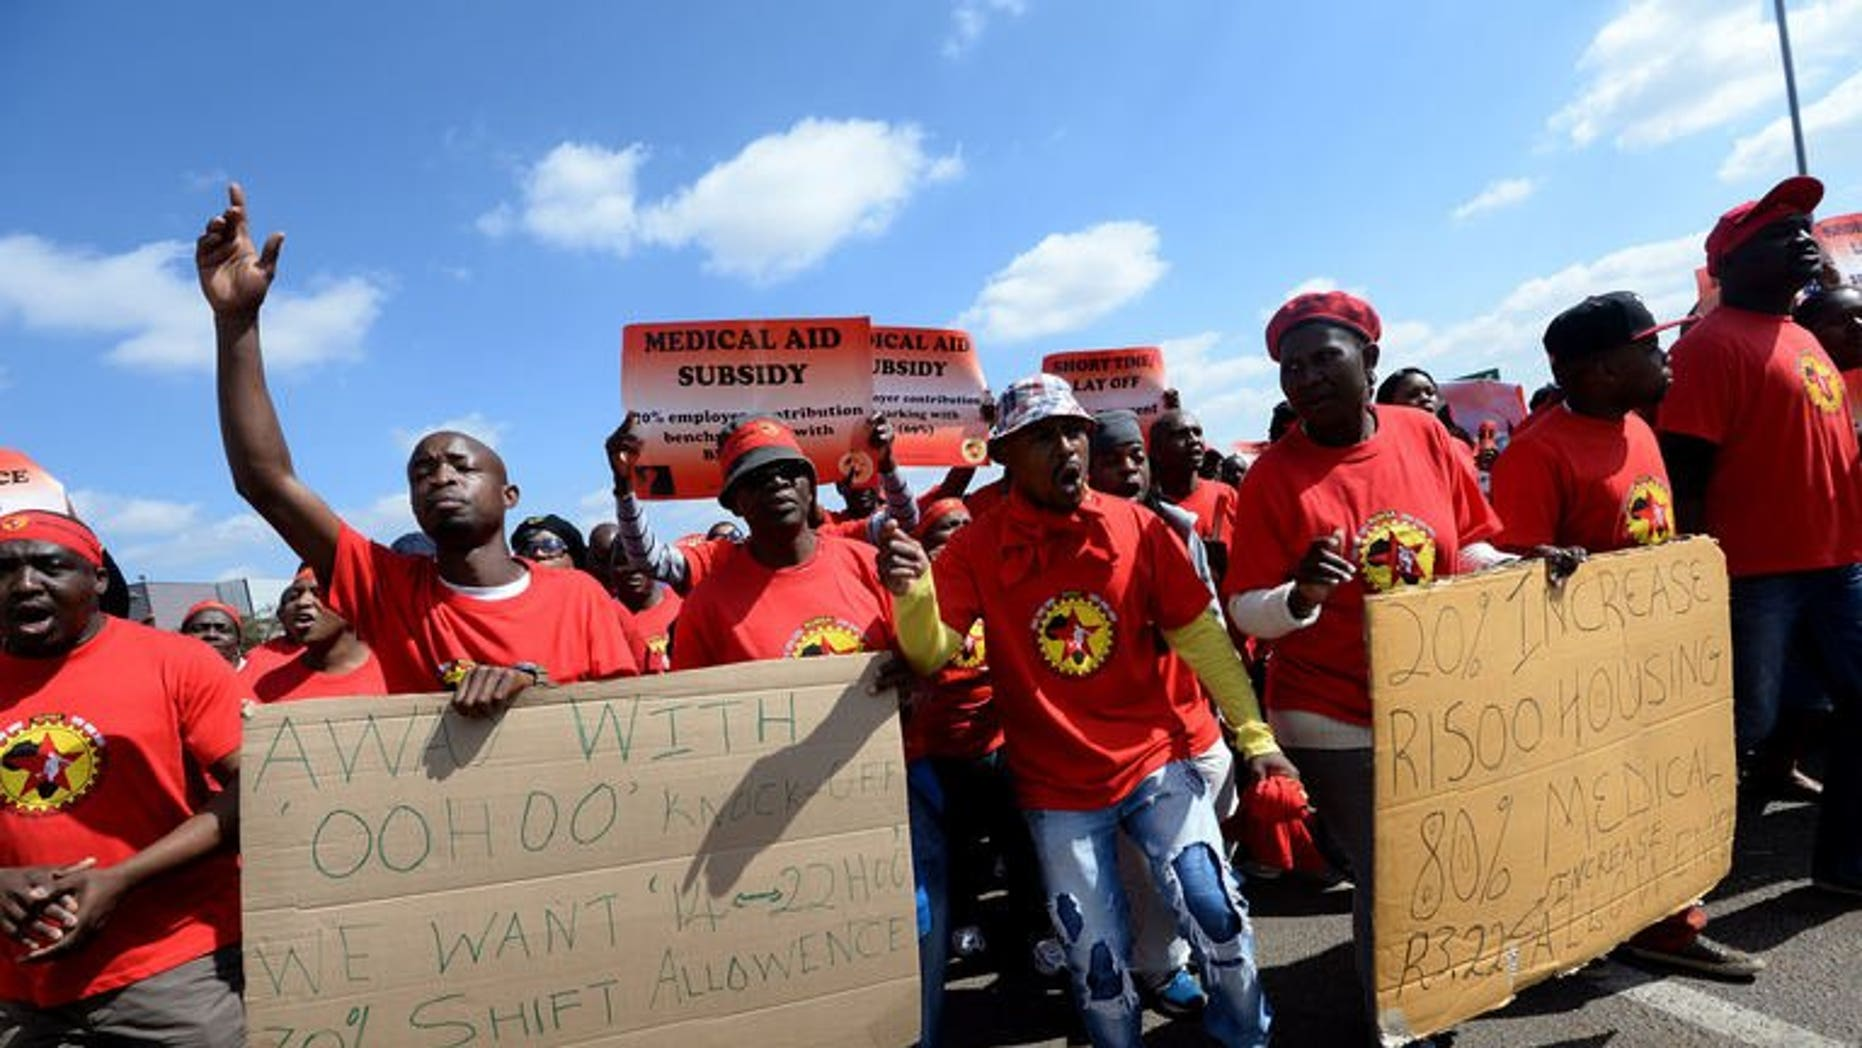 Workers on strike hold signs as they take part in a demonstration outside Ford's plant in Pretoria on August 20, 2013. South African 12-month consumer price inflation jumped to 6.3 percent in July from 5.5 percent in June due to higher fuel prices, official figures showed on Wednesday.